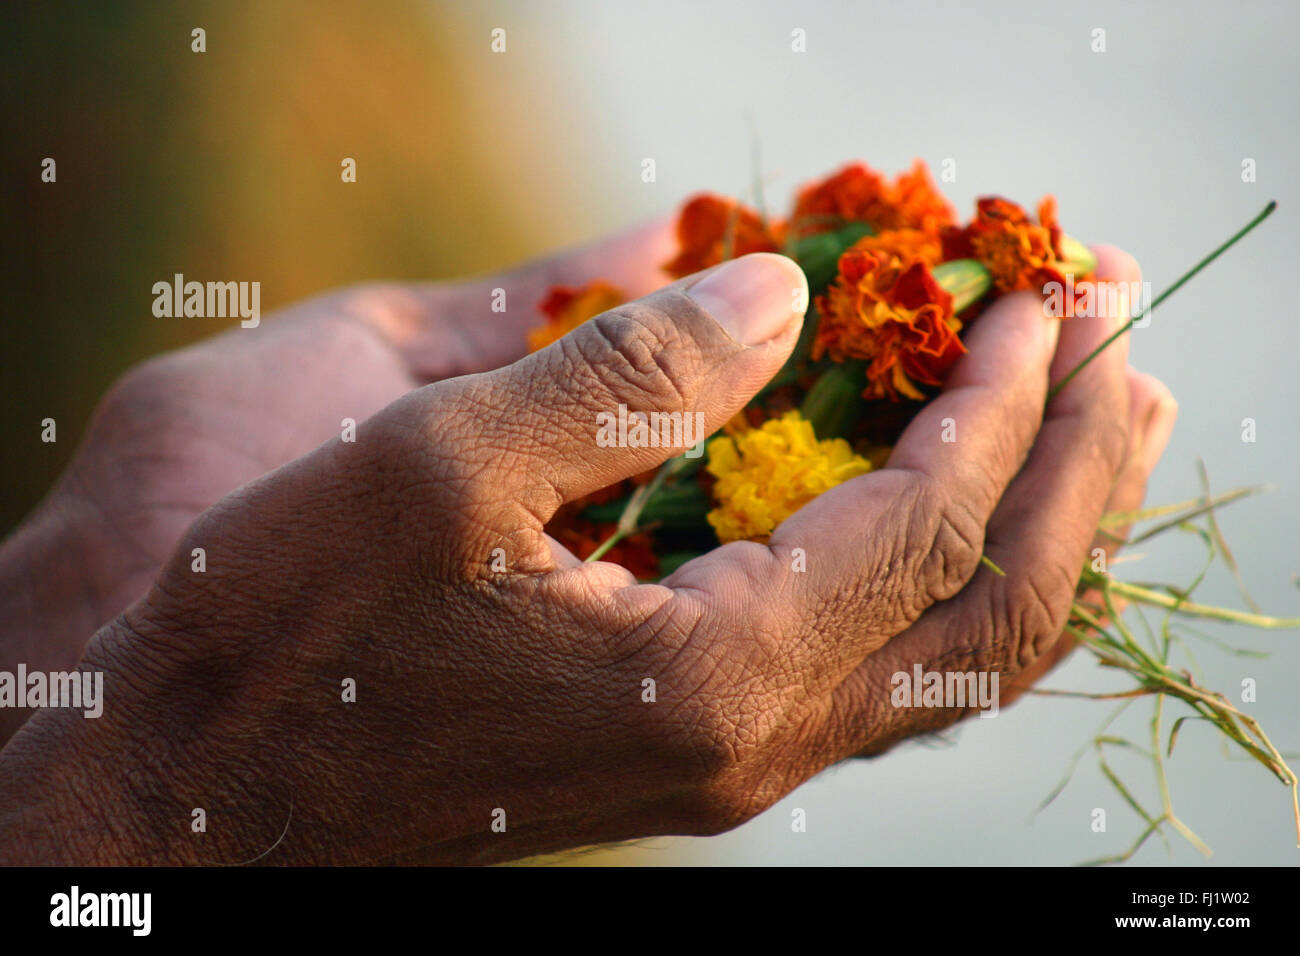 Puja of flowers in Varanasi, India - Architecture and daily street life - Stock Image